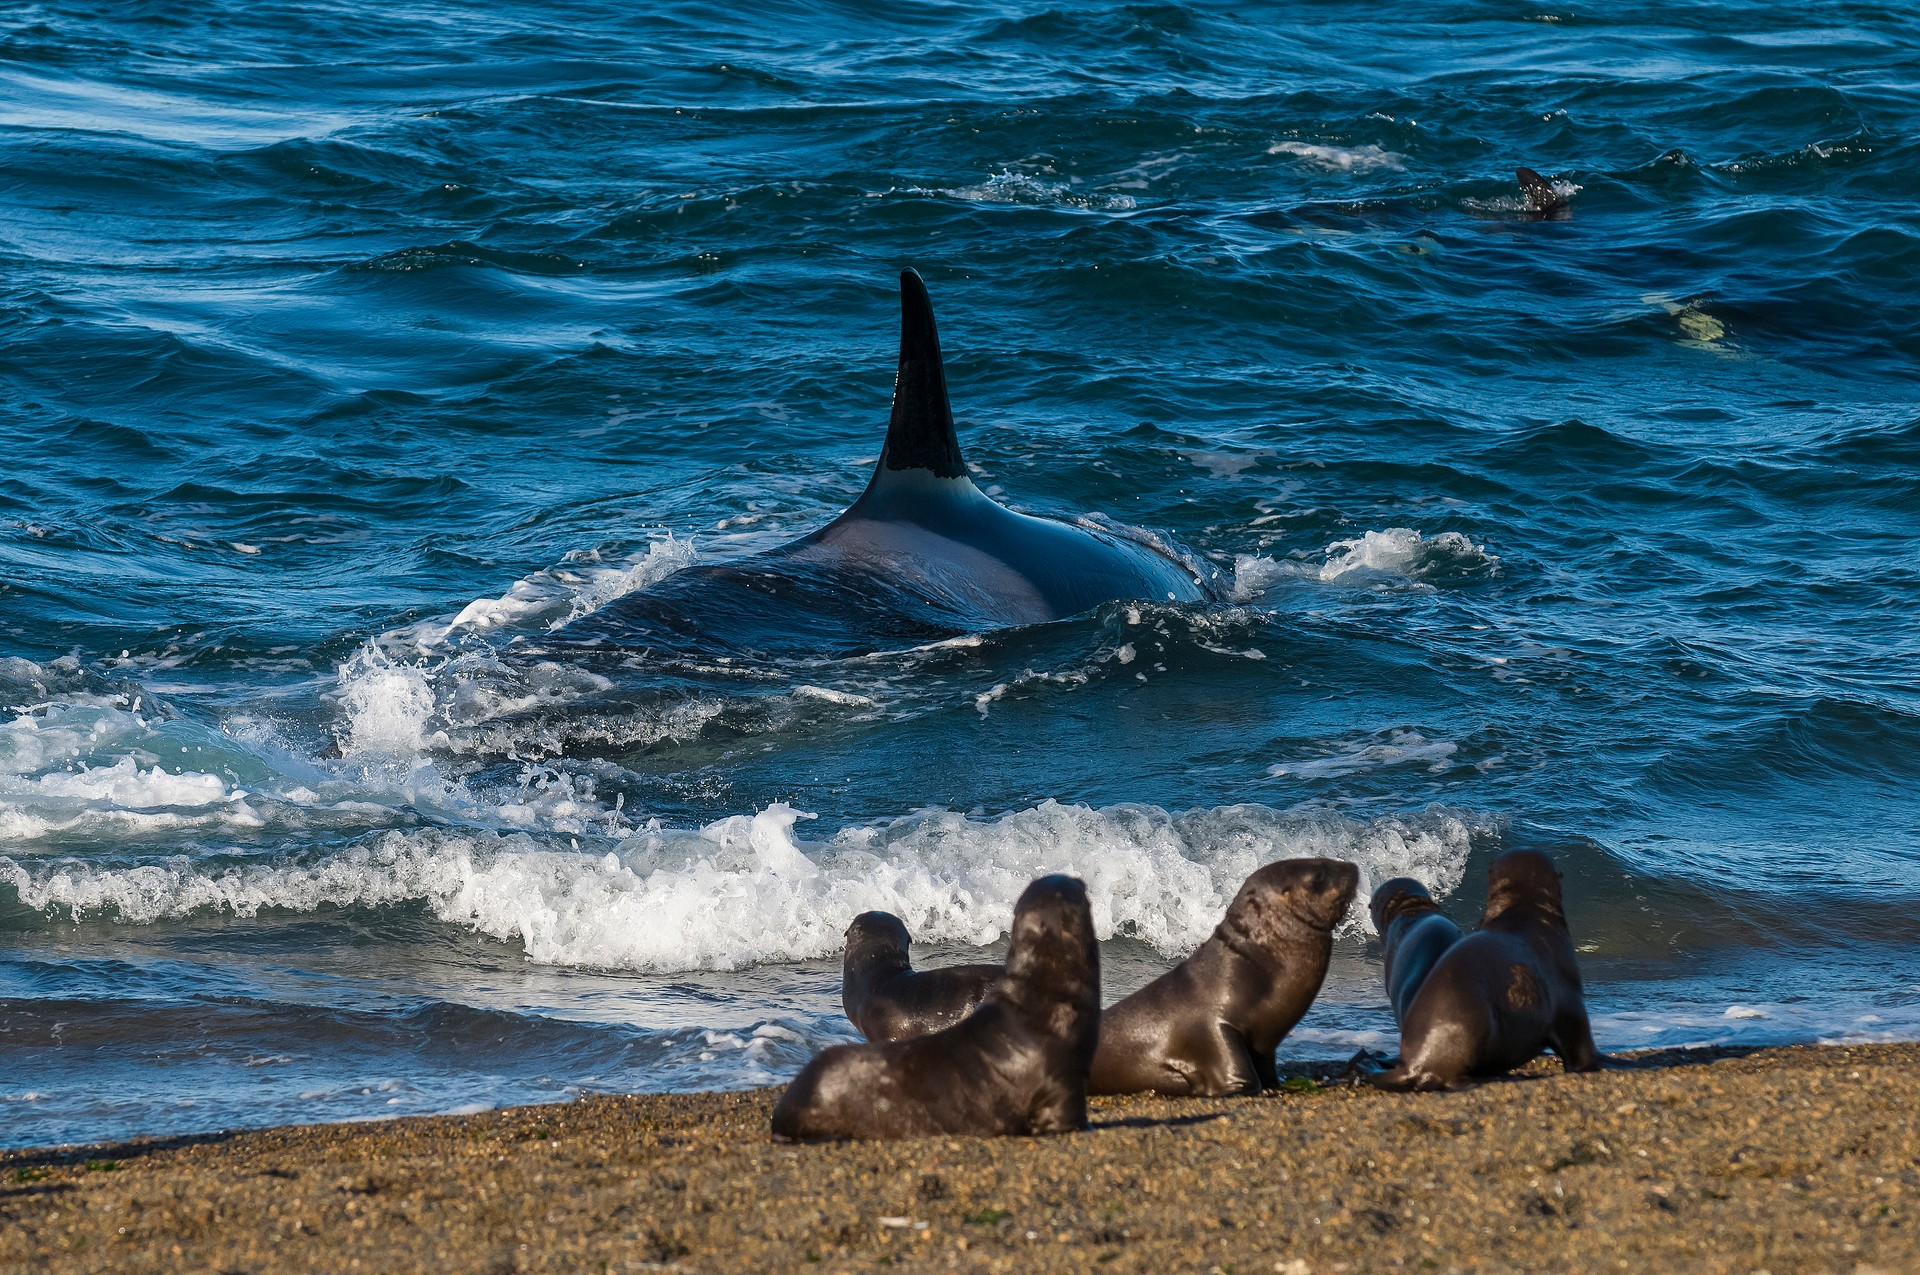 Orca hunting sea lion pups in Patagonia